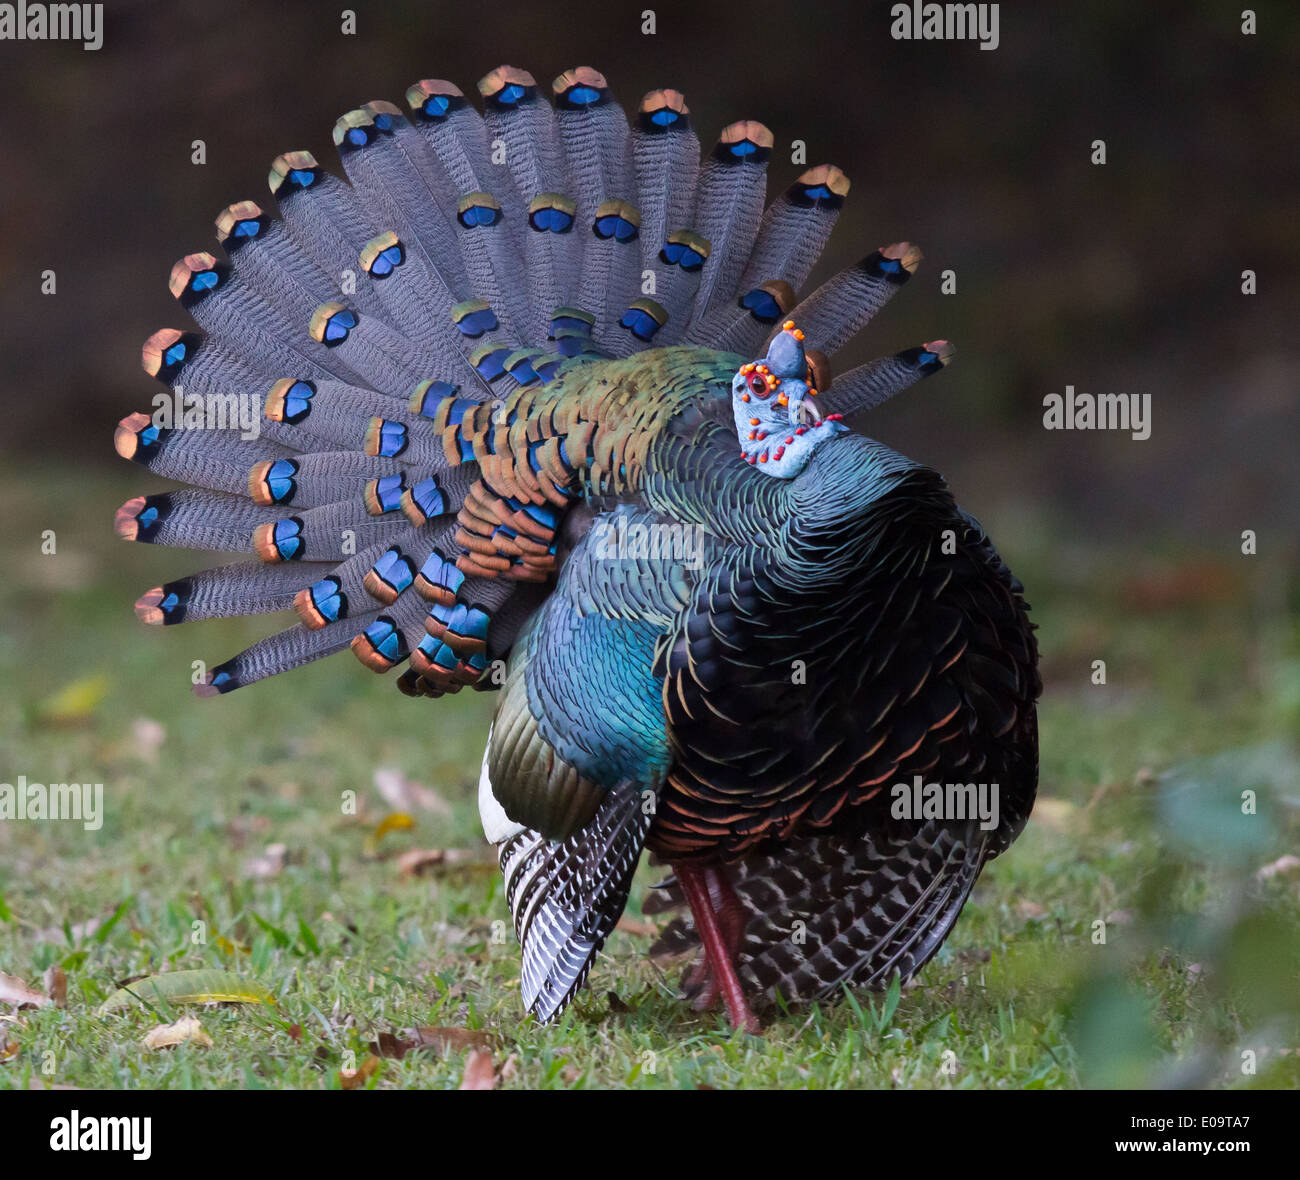 male Ocellated Turkey (Meleagris ocellata) displaying - Stock Image